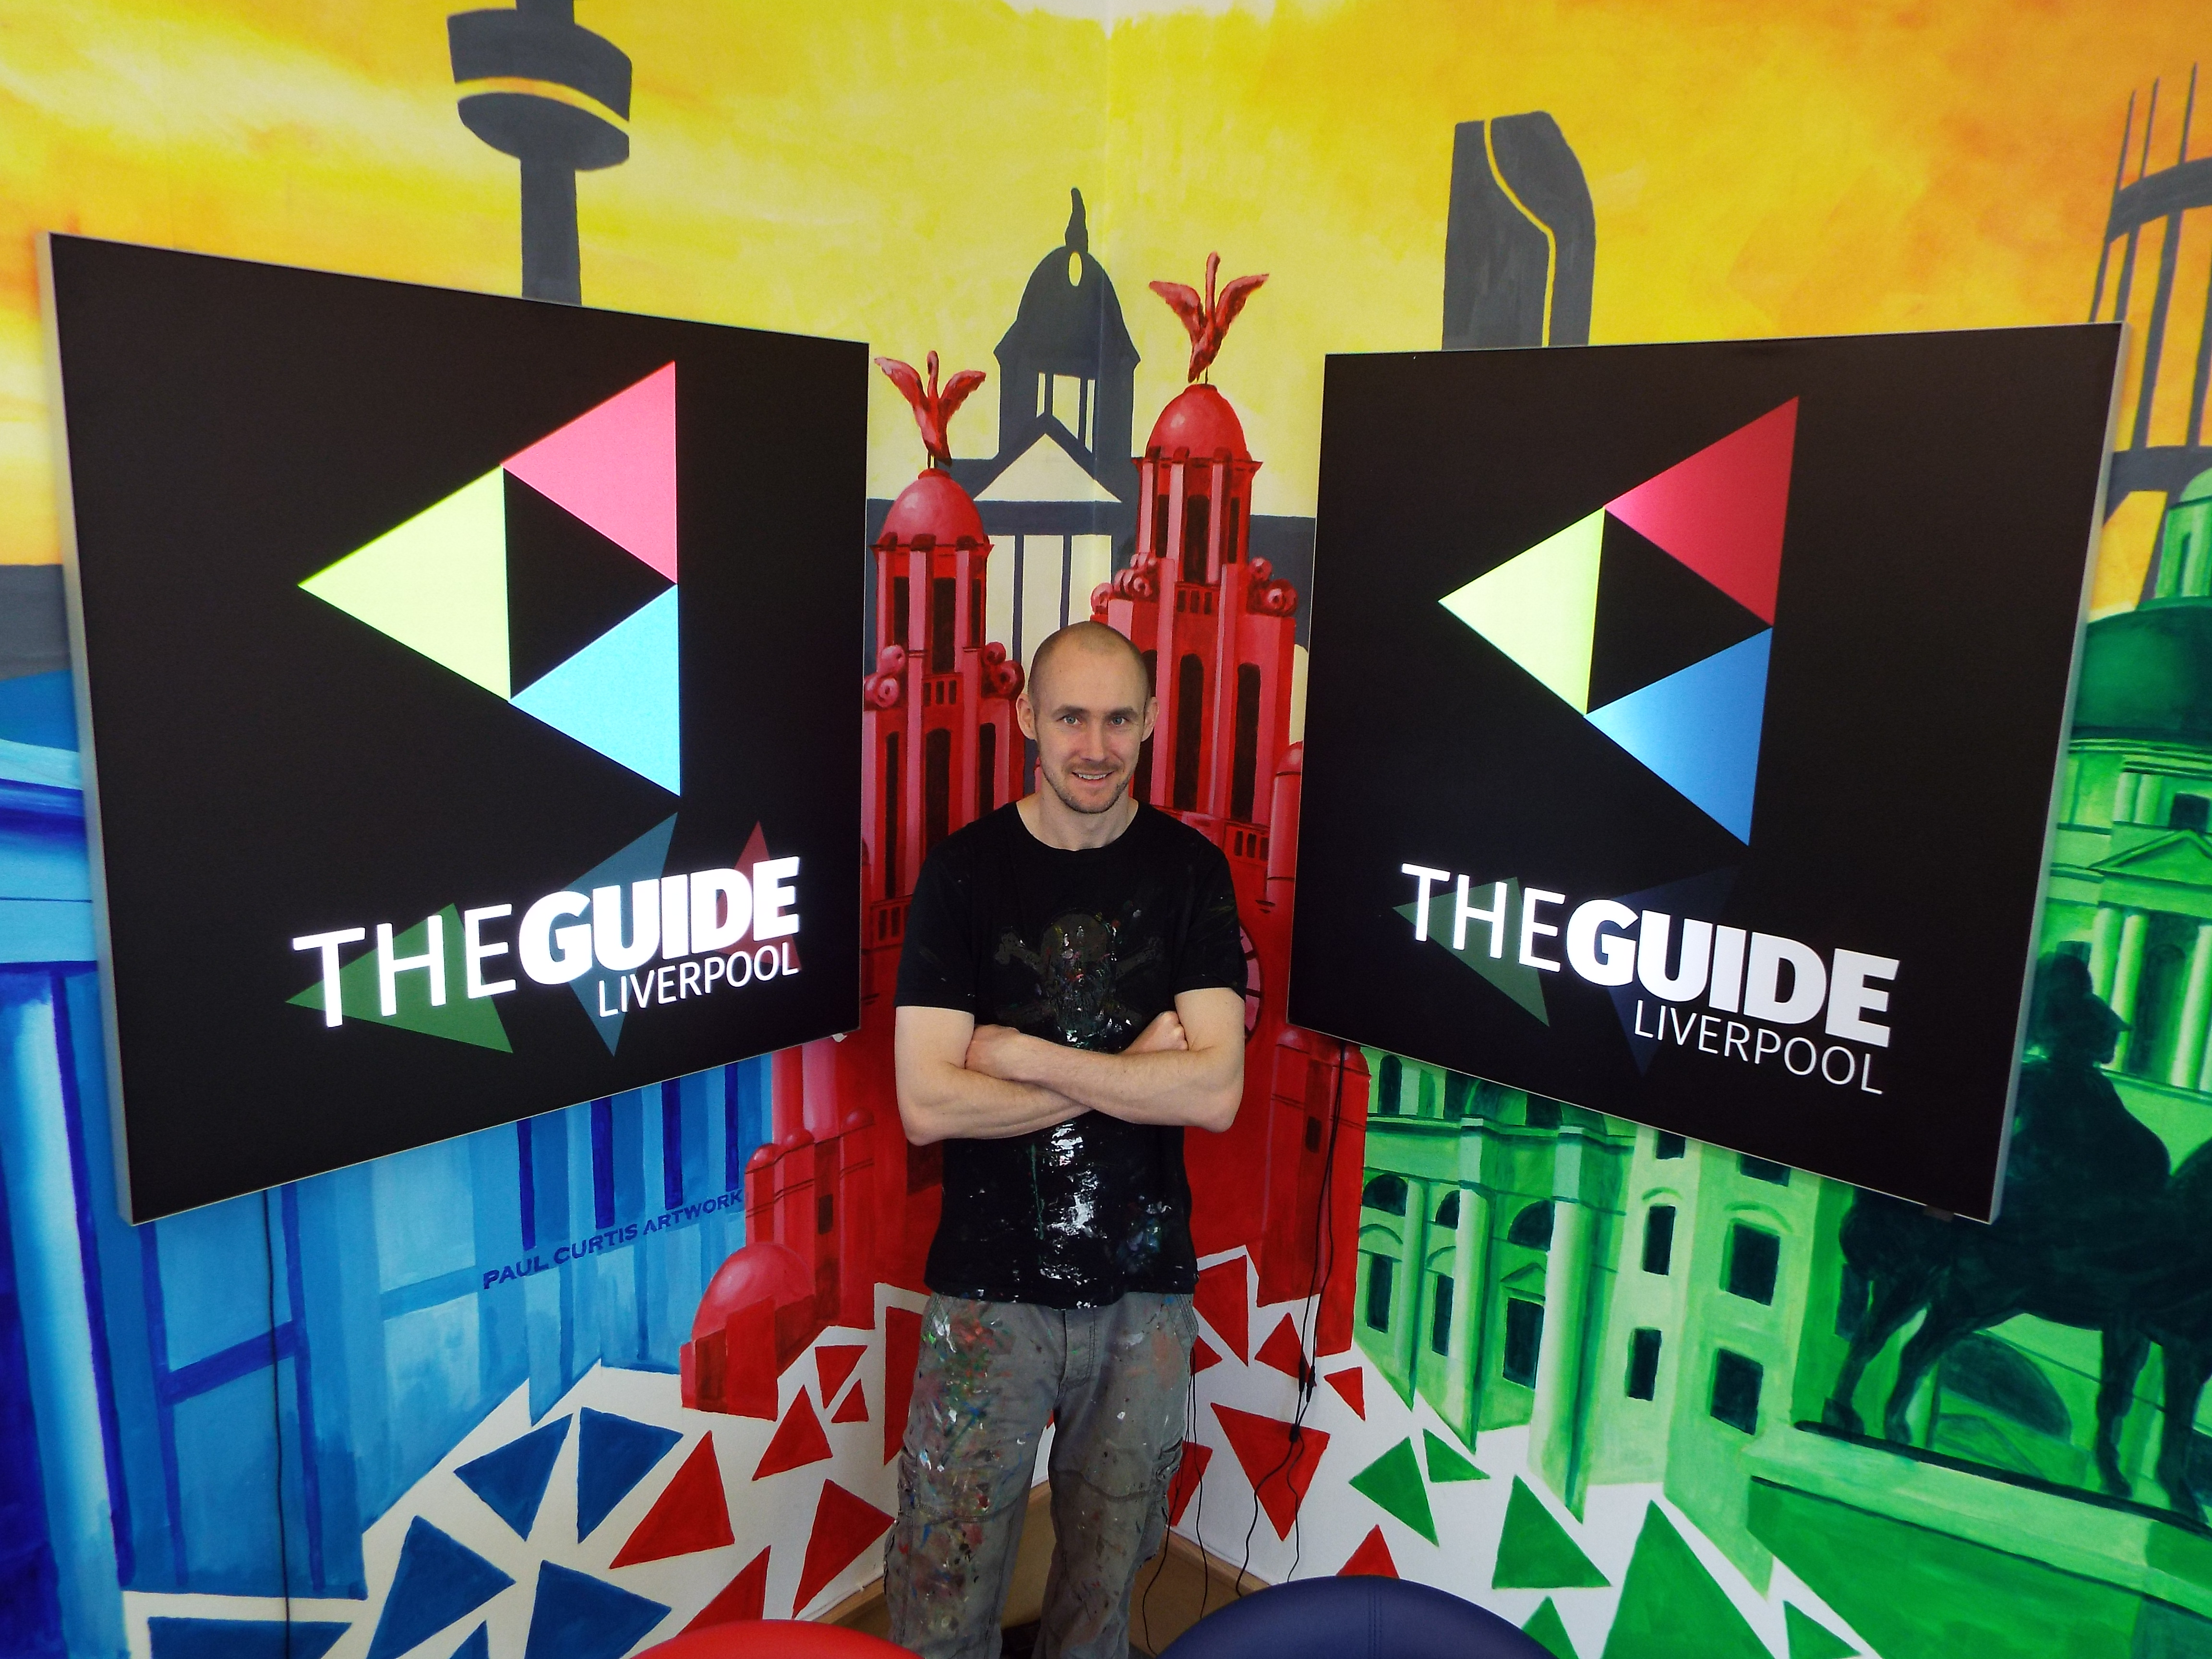 The Guide Mural